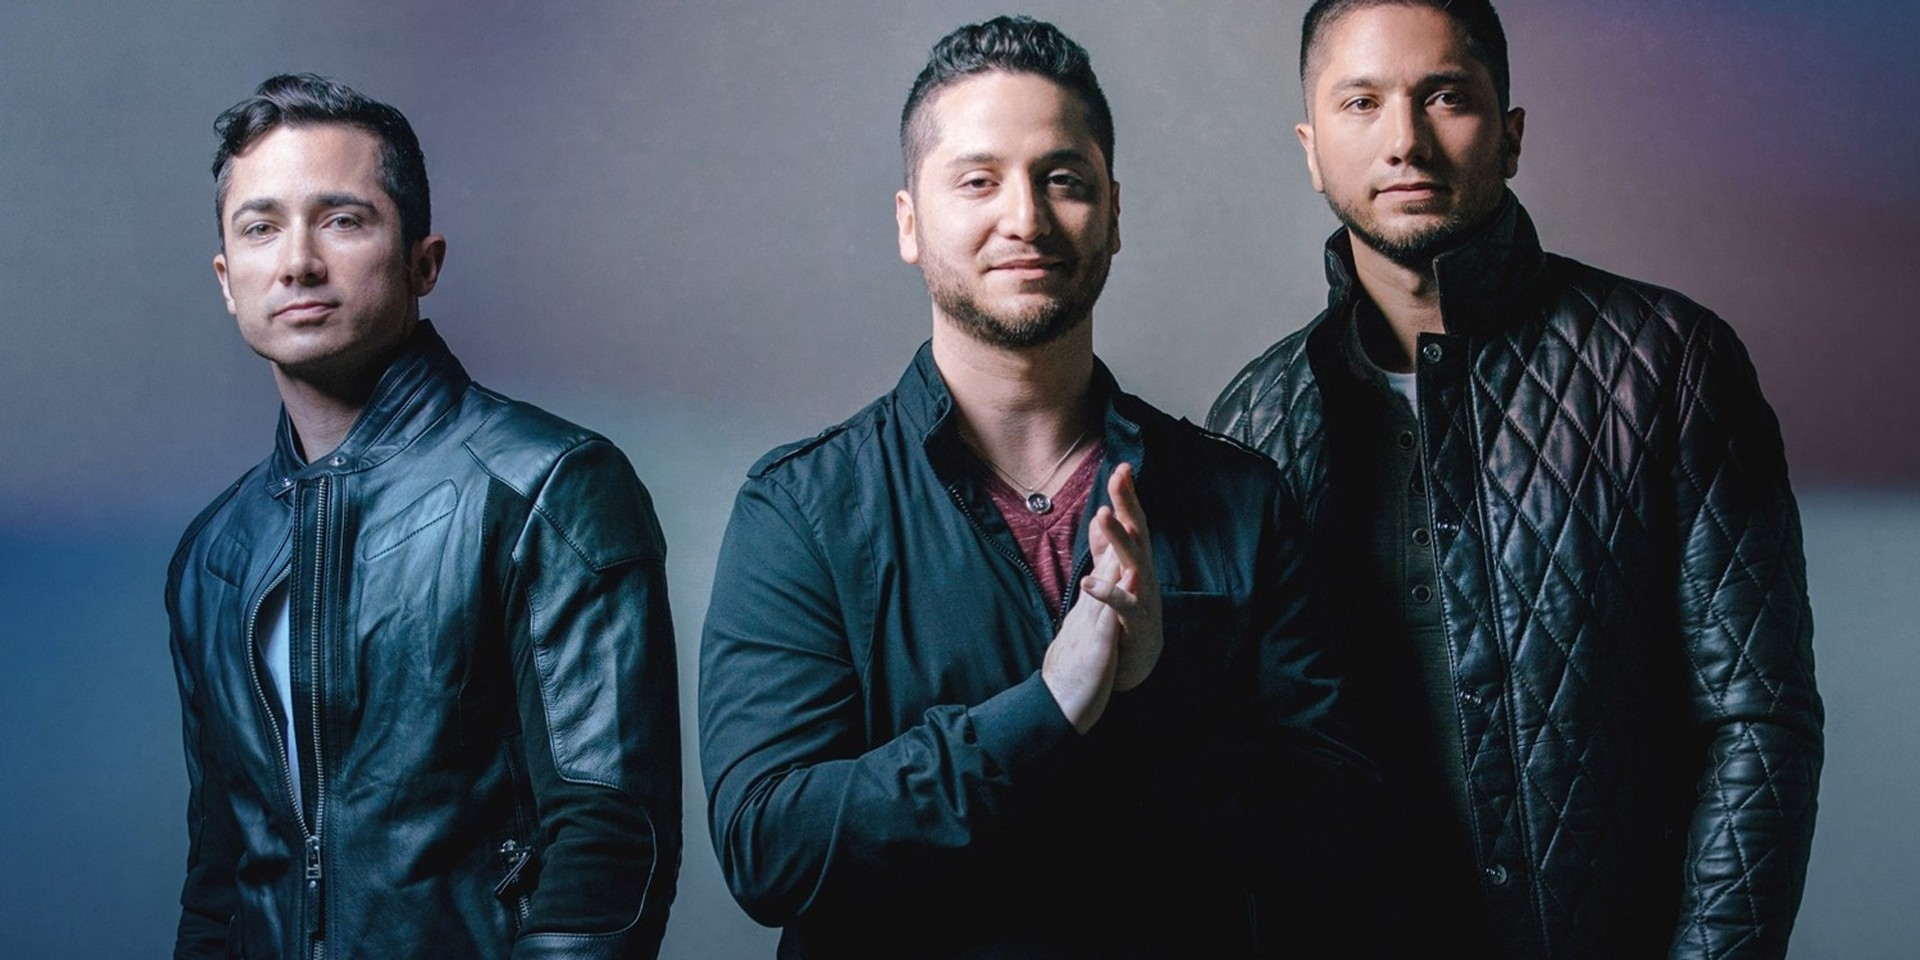 Boyce Avenue to share the stage with December Avenue and I Belong to the Zoo in 2020